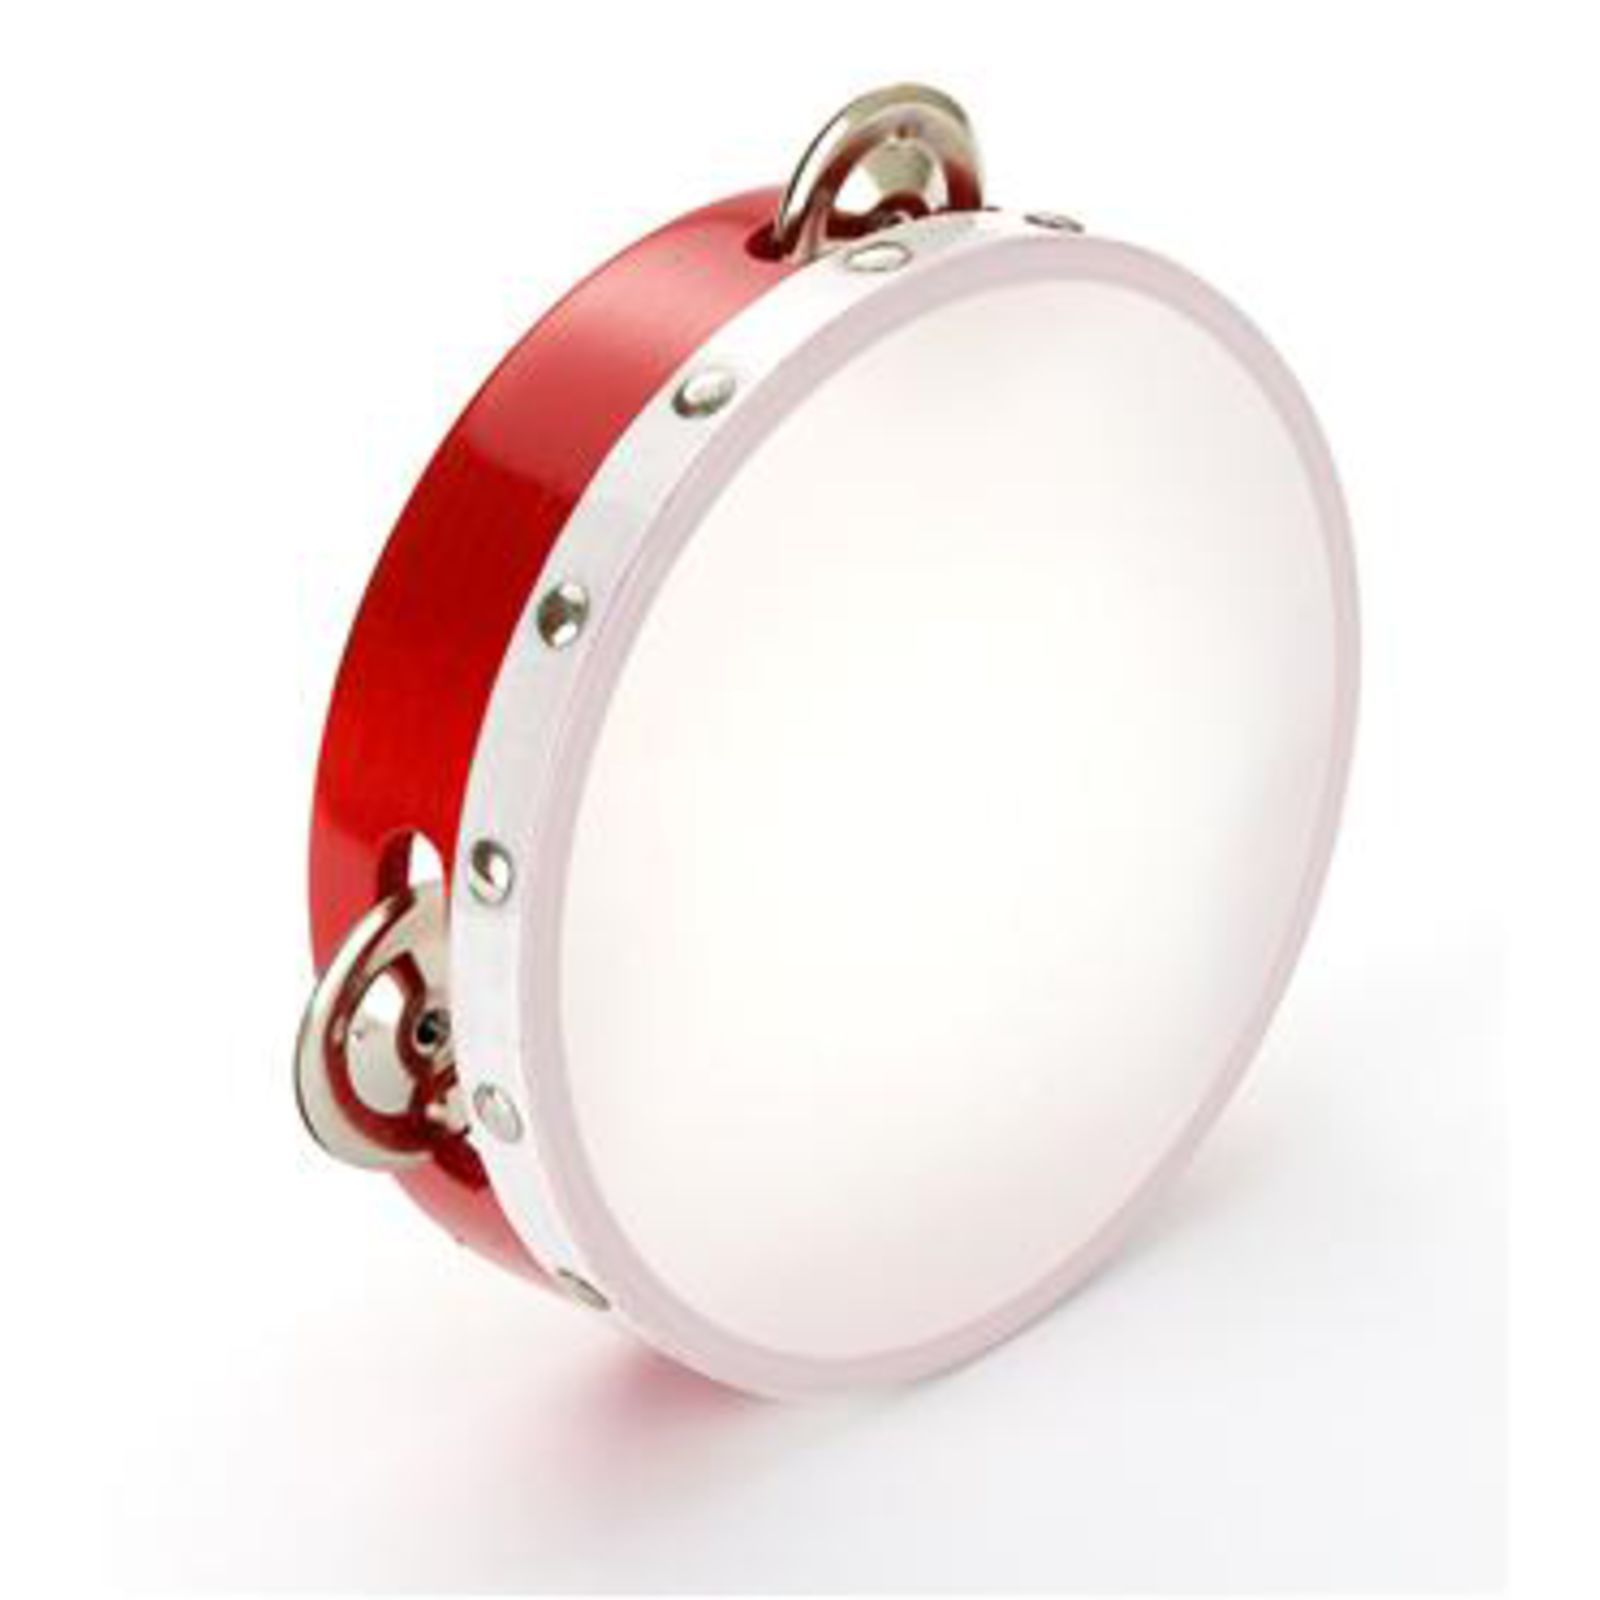 "Percussion Plus PP038 Tambourine 6""  Produktbild"